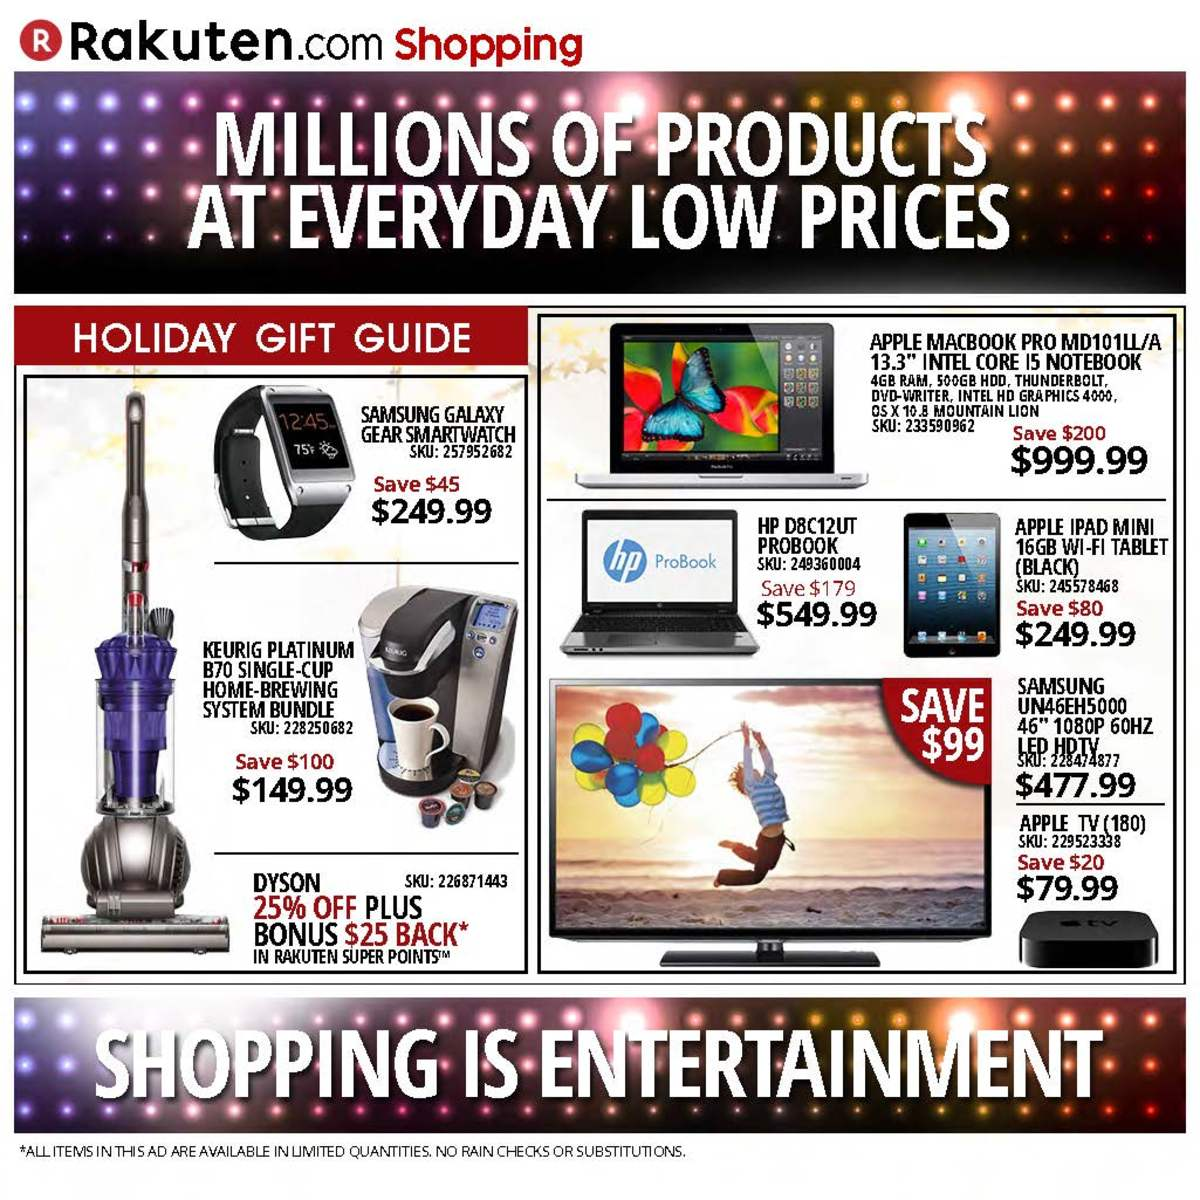 rakuten-black-friday-ad-2013_Page_2